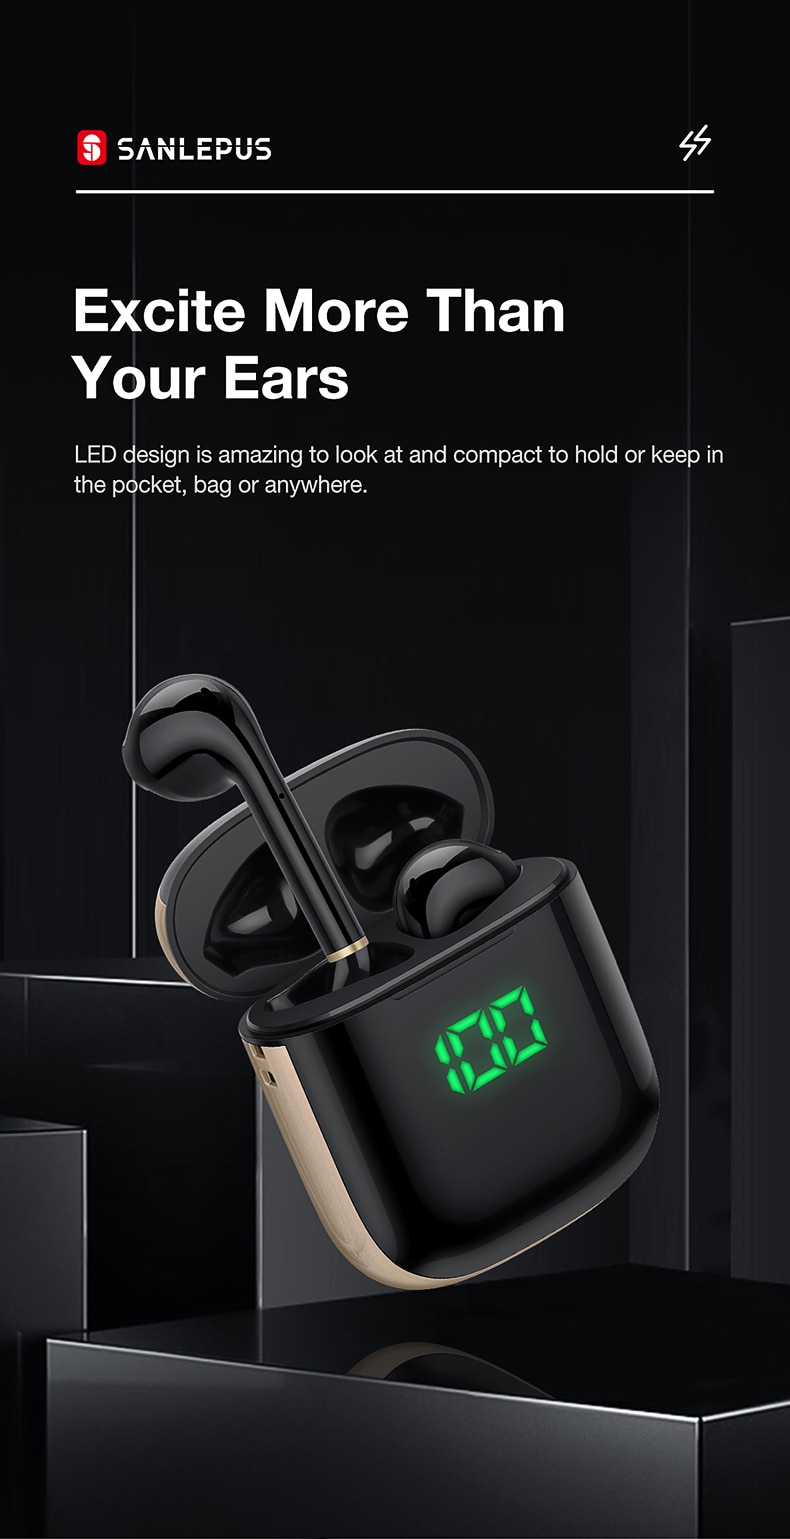 SANLEPUS Led Display TWS Earphones Wireless Headphones 3D Stereo Earbuds Gaming Sport Headset For Android iPhone Xiaomi Huawei